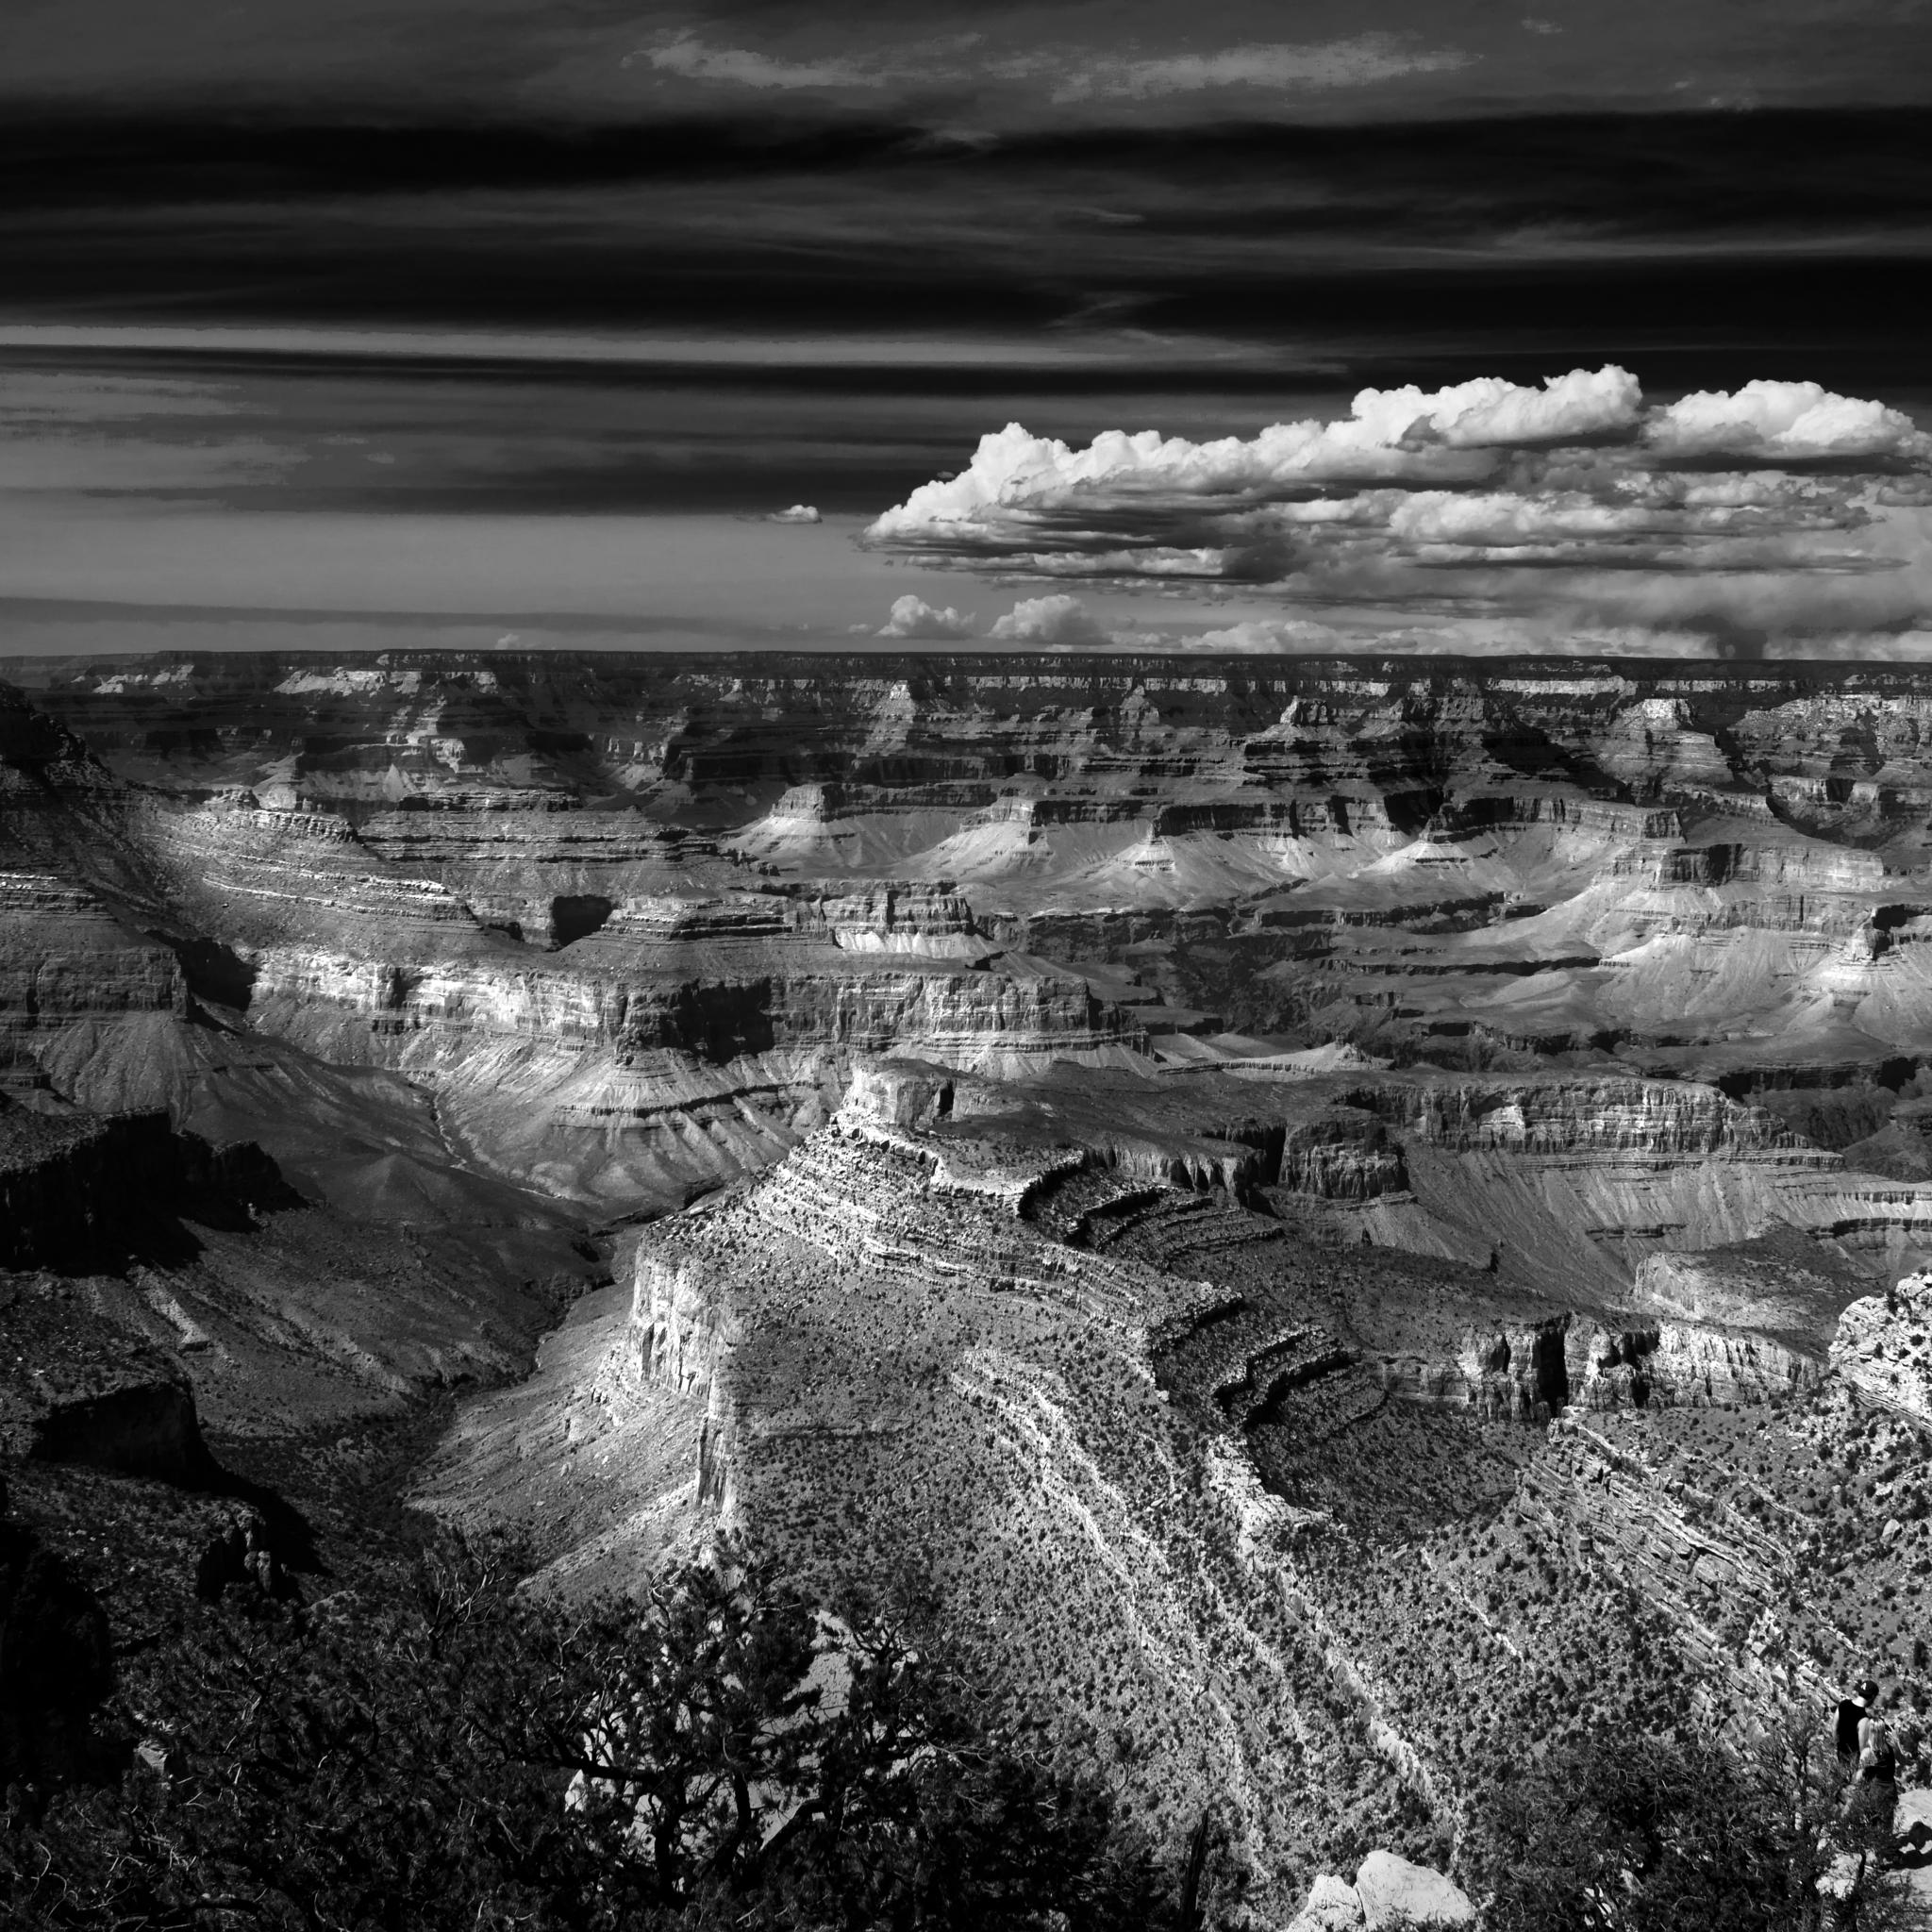 Grand Canyon by rhoulston